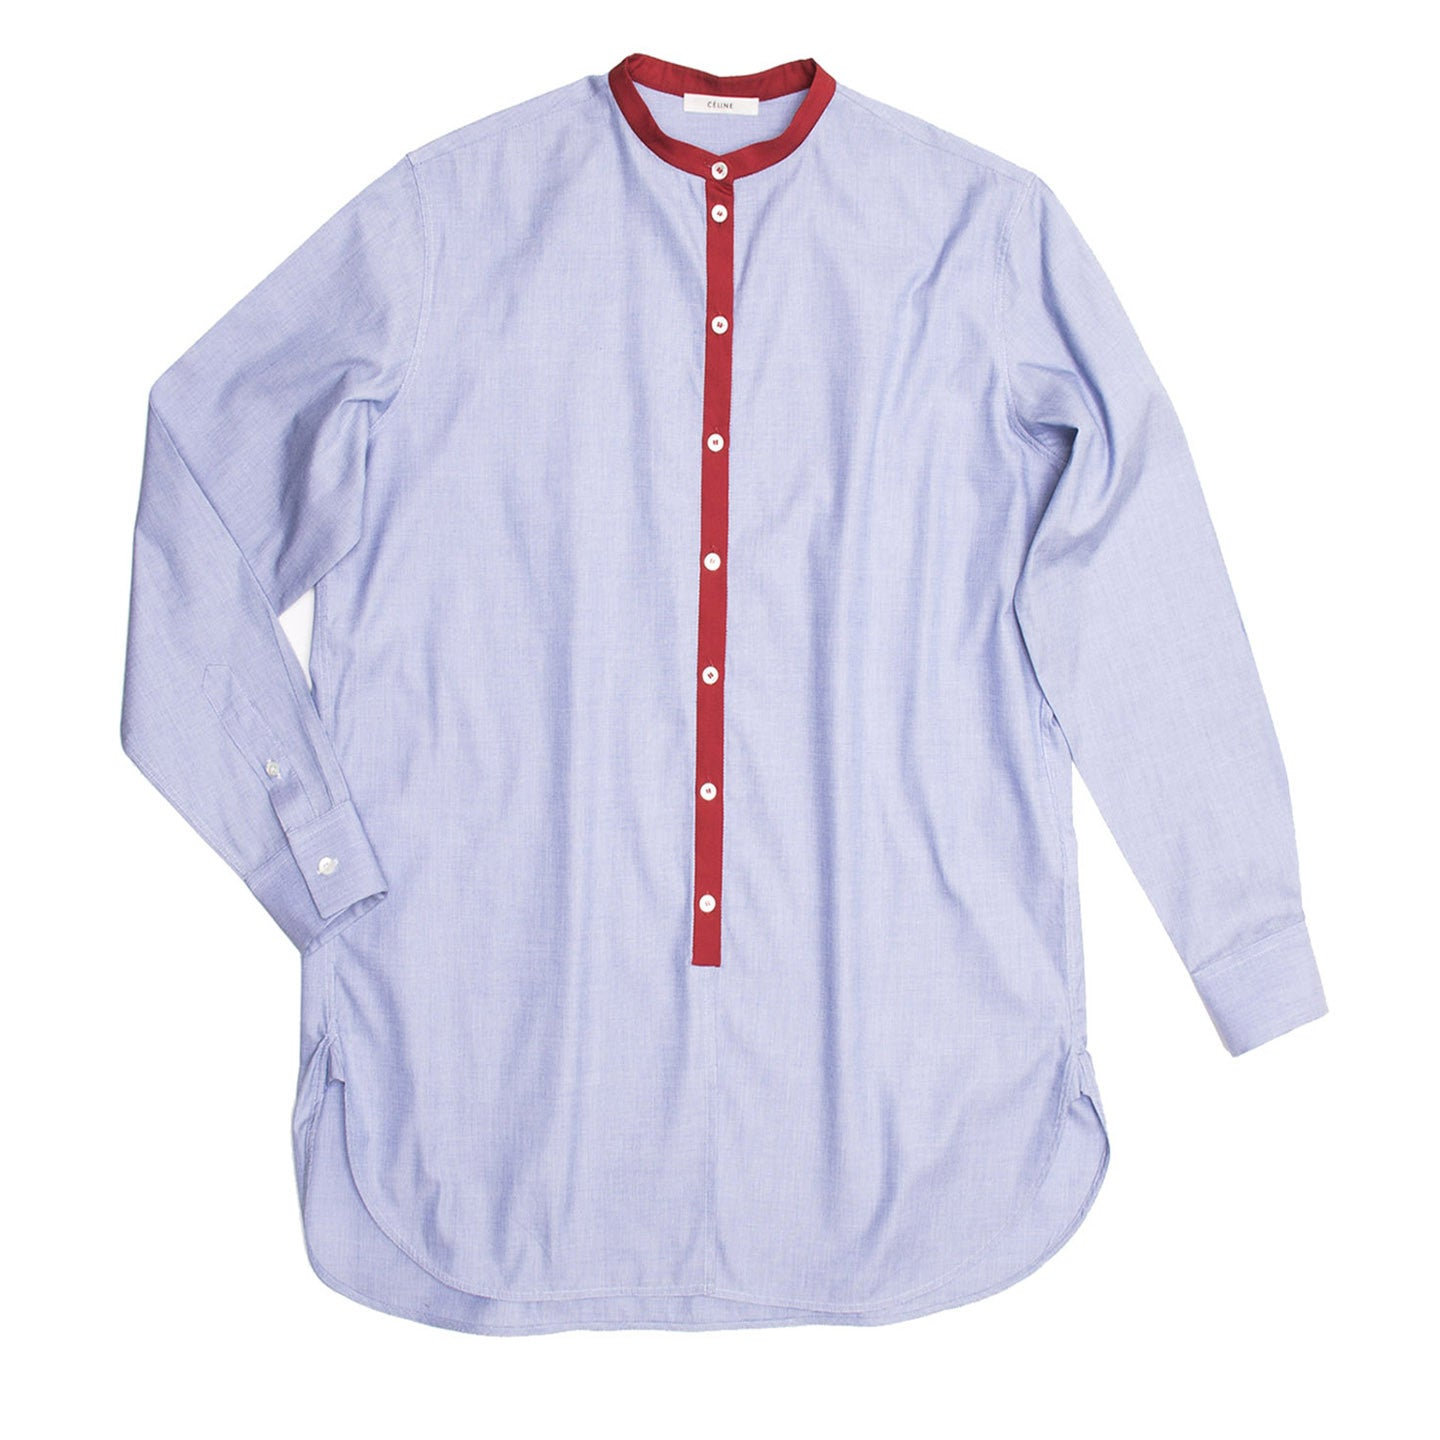 Find an authentic preowned Celine Blue & Red Cotton Shirt, size 38 (French) at BunnyJack, where a portion of every sale goes to charity.